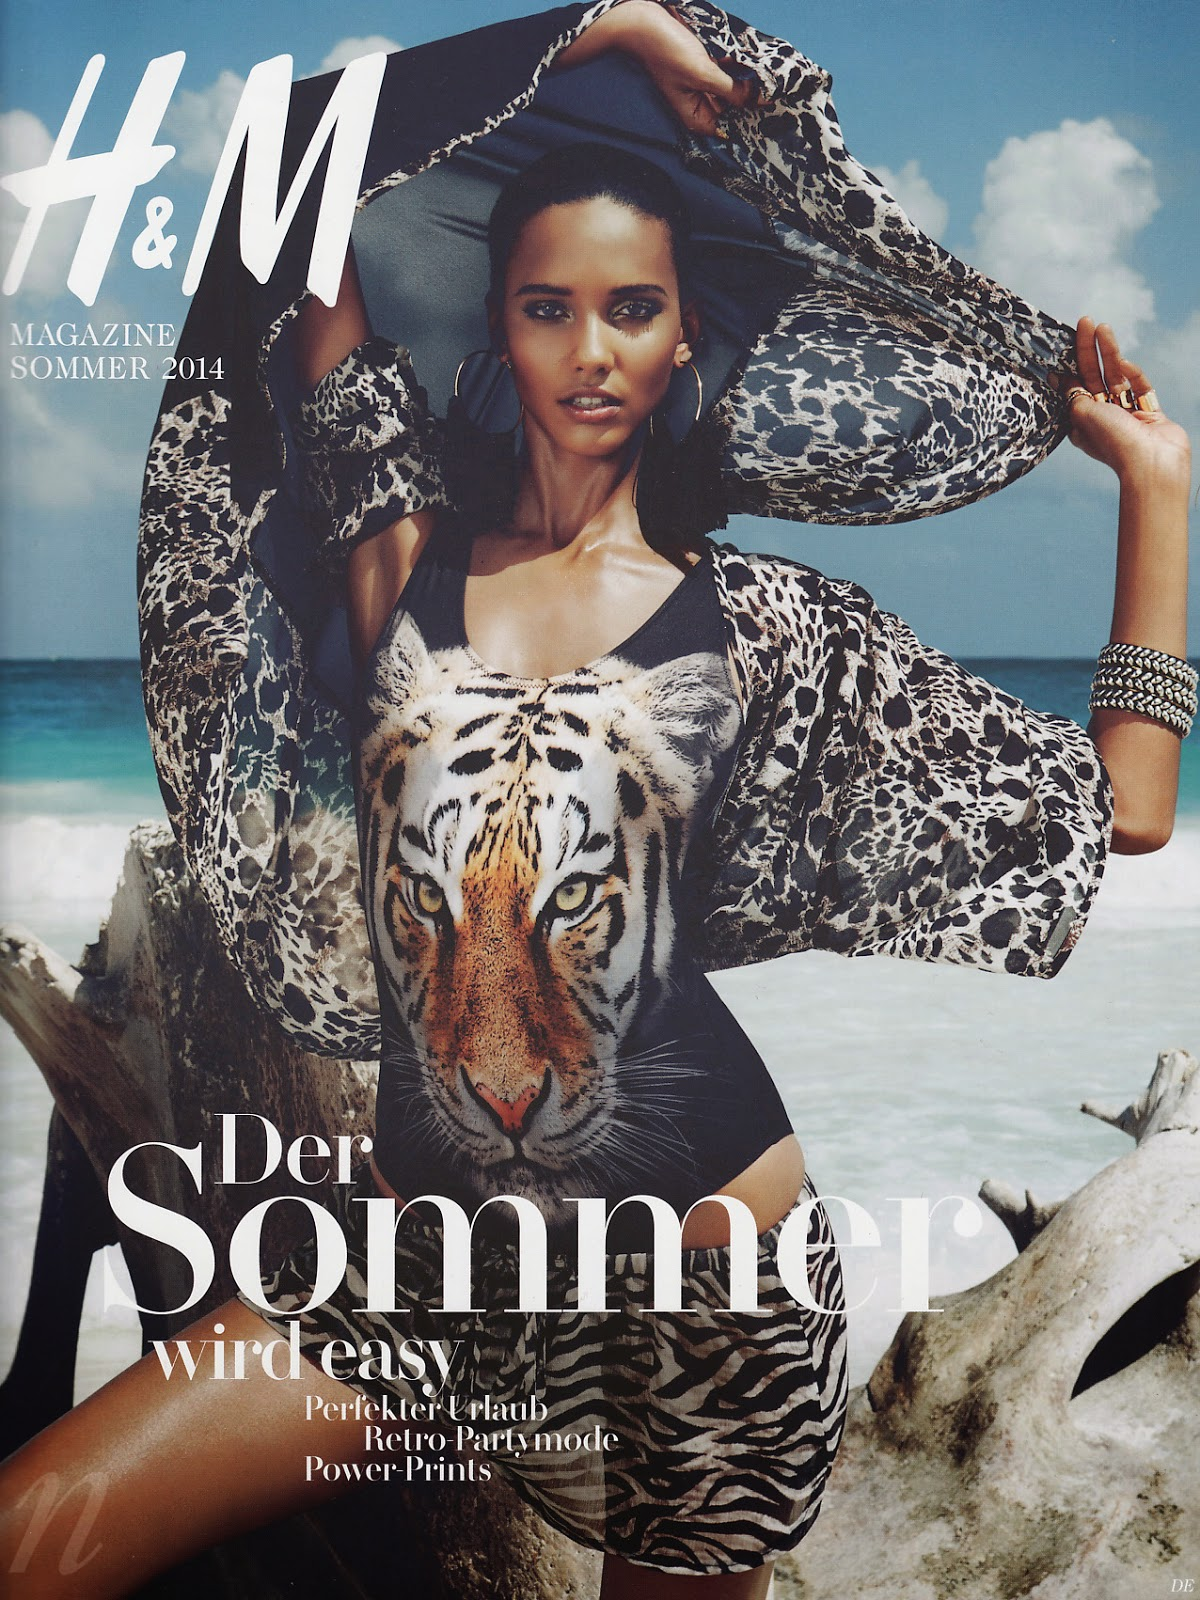 H&M Magazine is a world of inspiration. We give you daily updates on fashion, trends, beauty and pop culture. Celebrity interviews, videos and the.